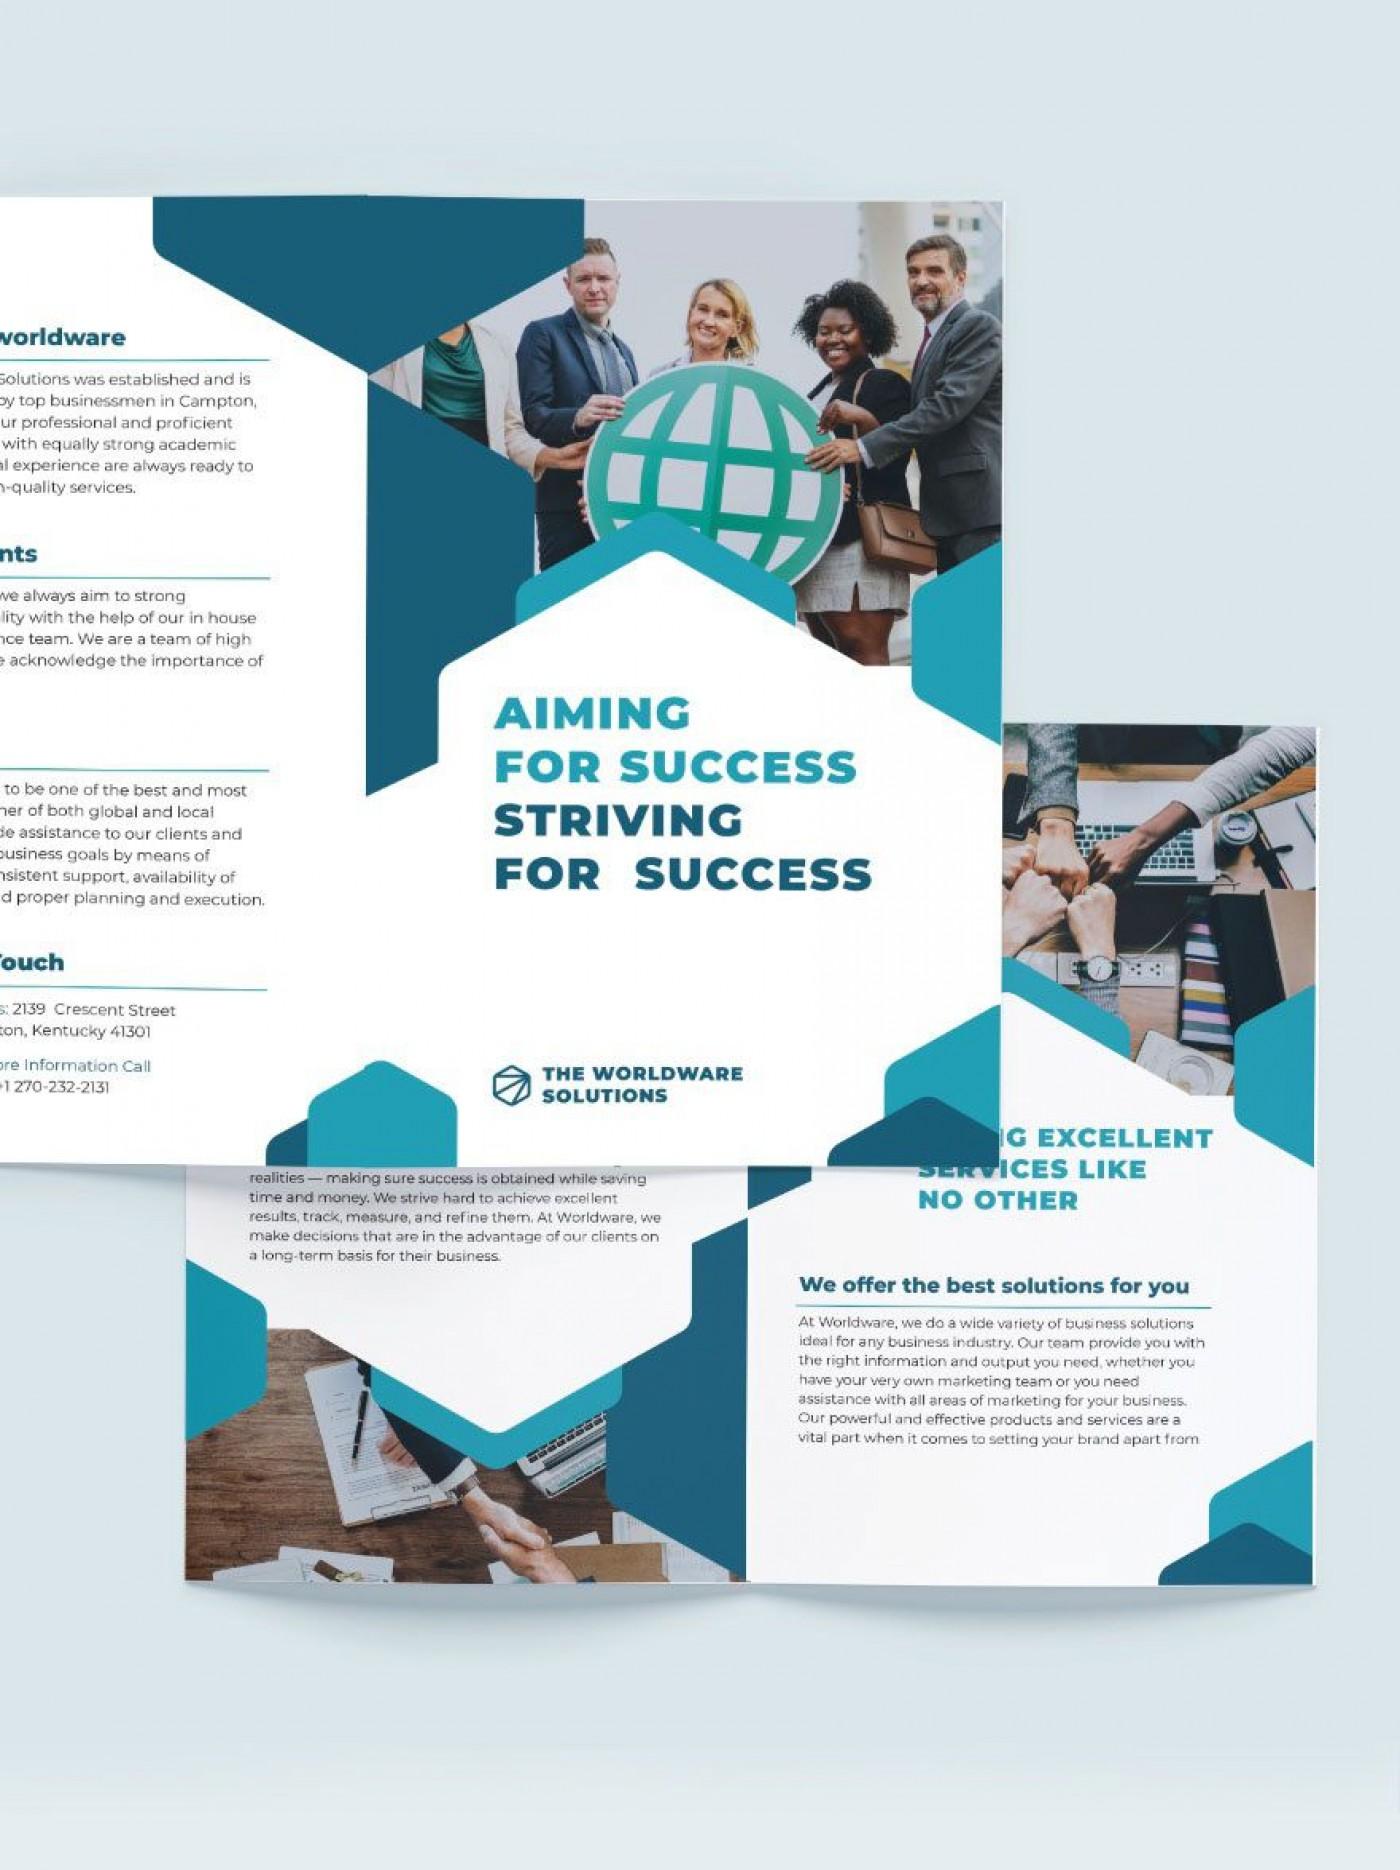 004 Outstanding Adobe Photoshop Brochure Template Free Download High Resolution 1400